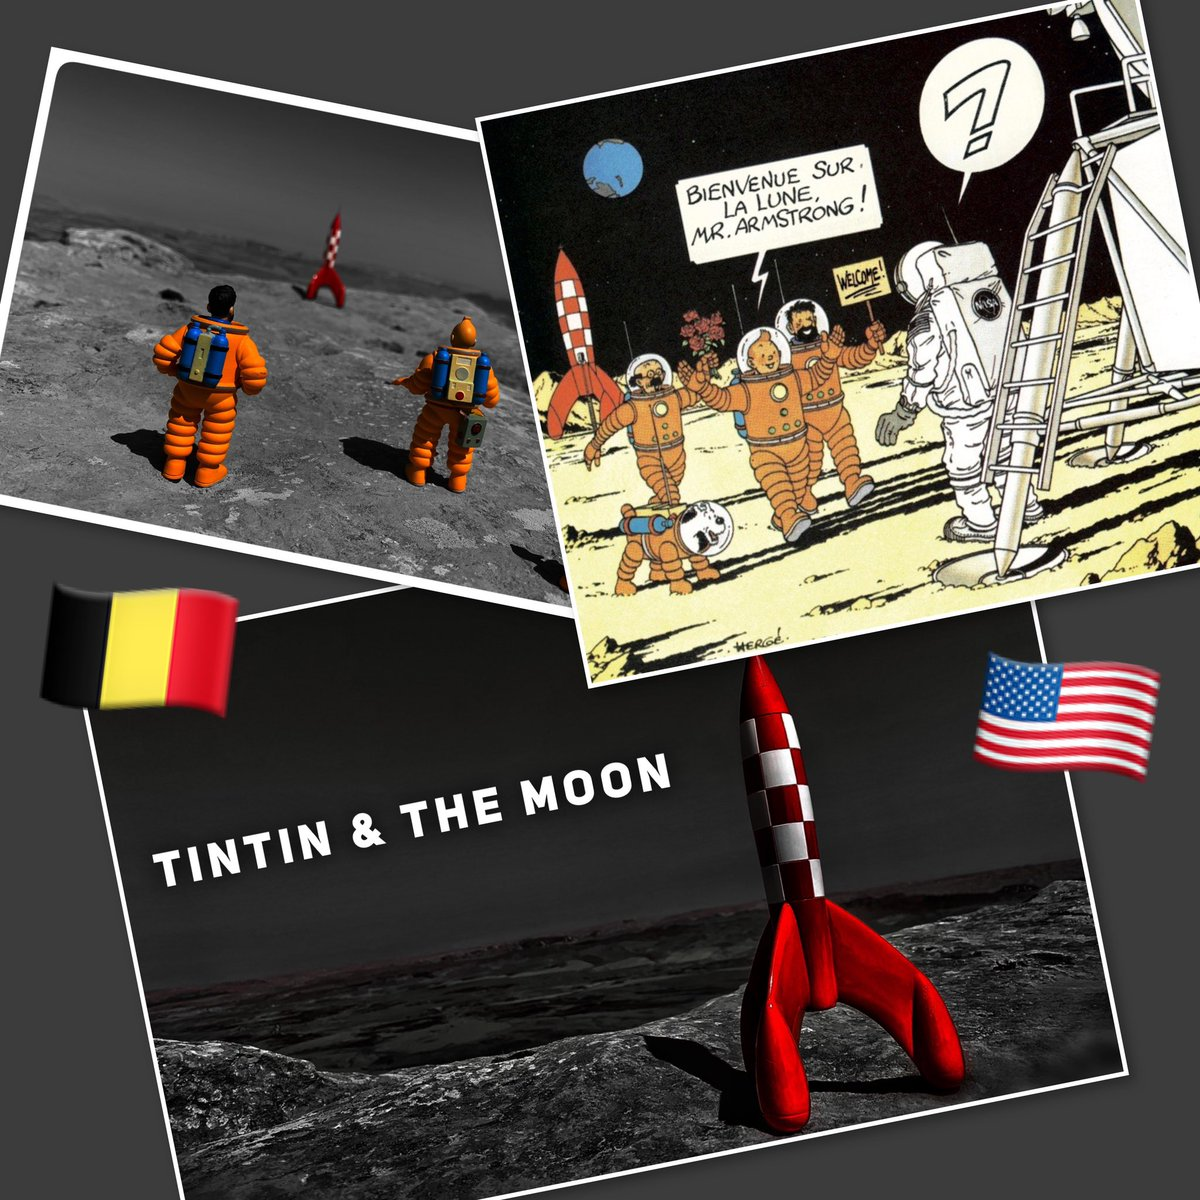 Welcome to the Moon Mr #armstrong ! #tintin #apollo11anniversary #apollo50th #belgiannationalday<br>http://pic.twitter.com/LQdQXUGcsi